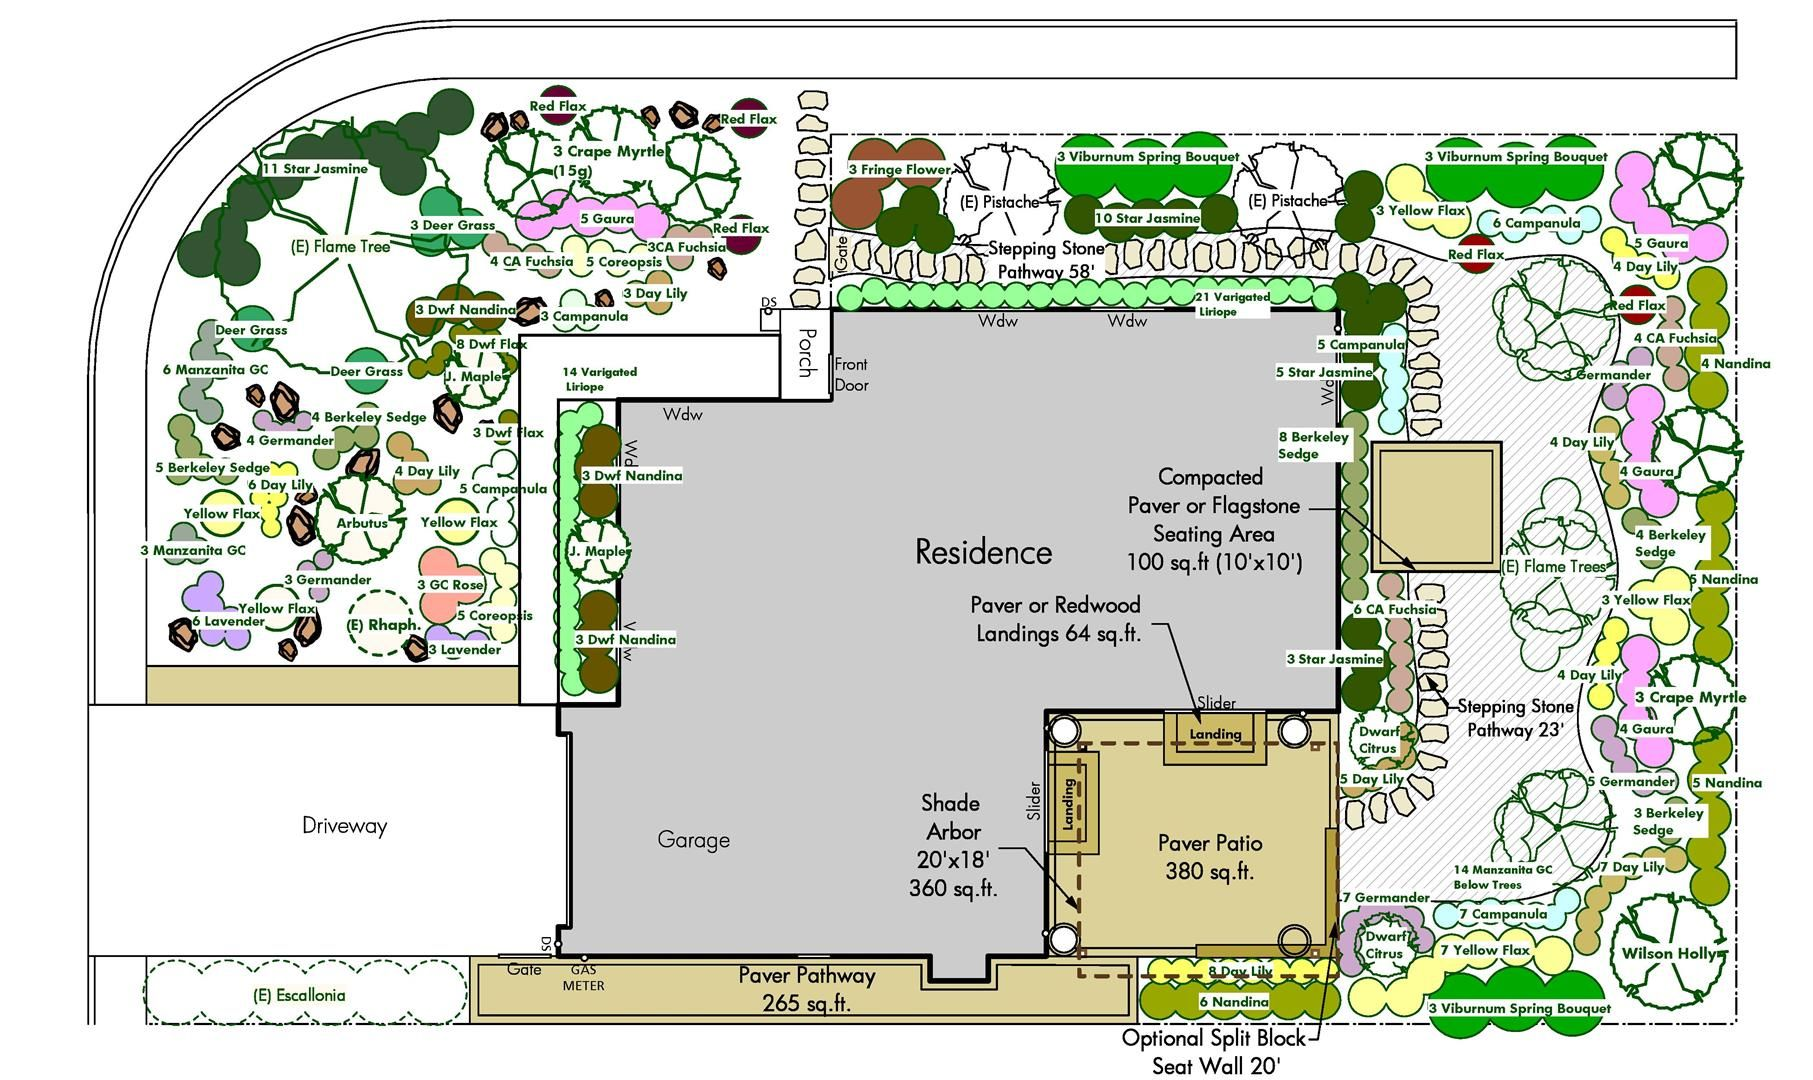 Very similar lot and house layout holy planting batman for Front landscaping plans